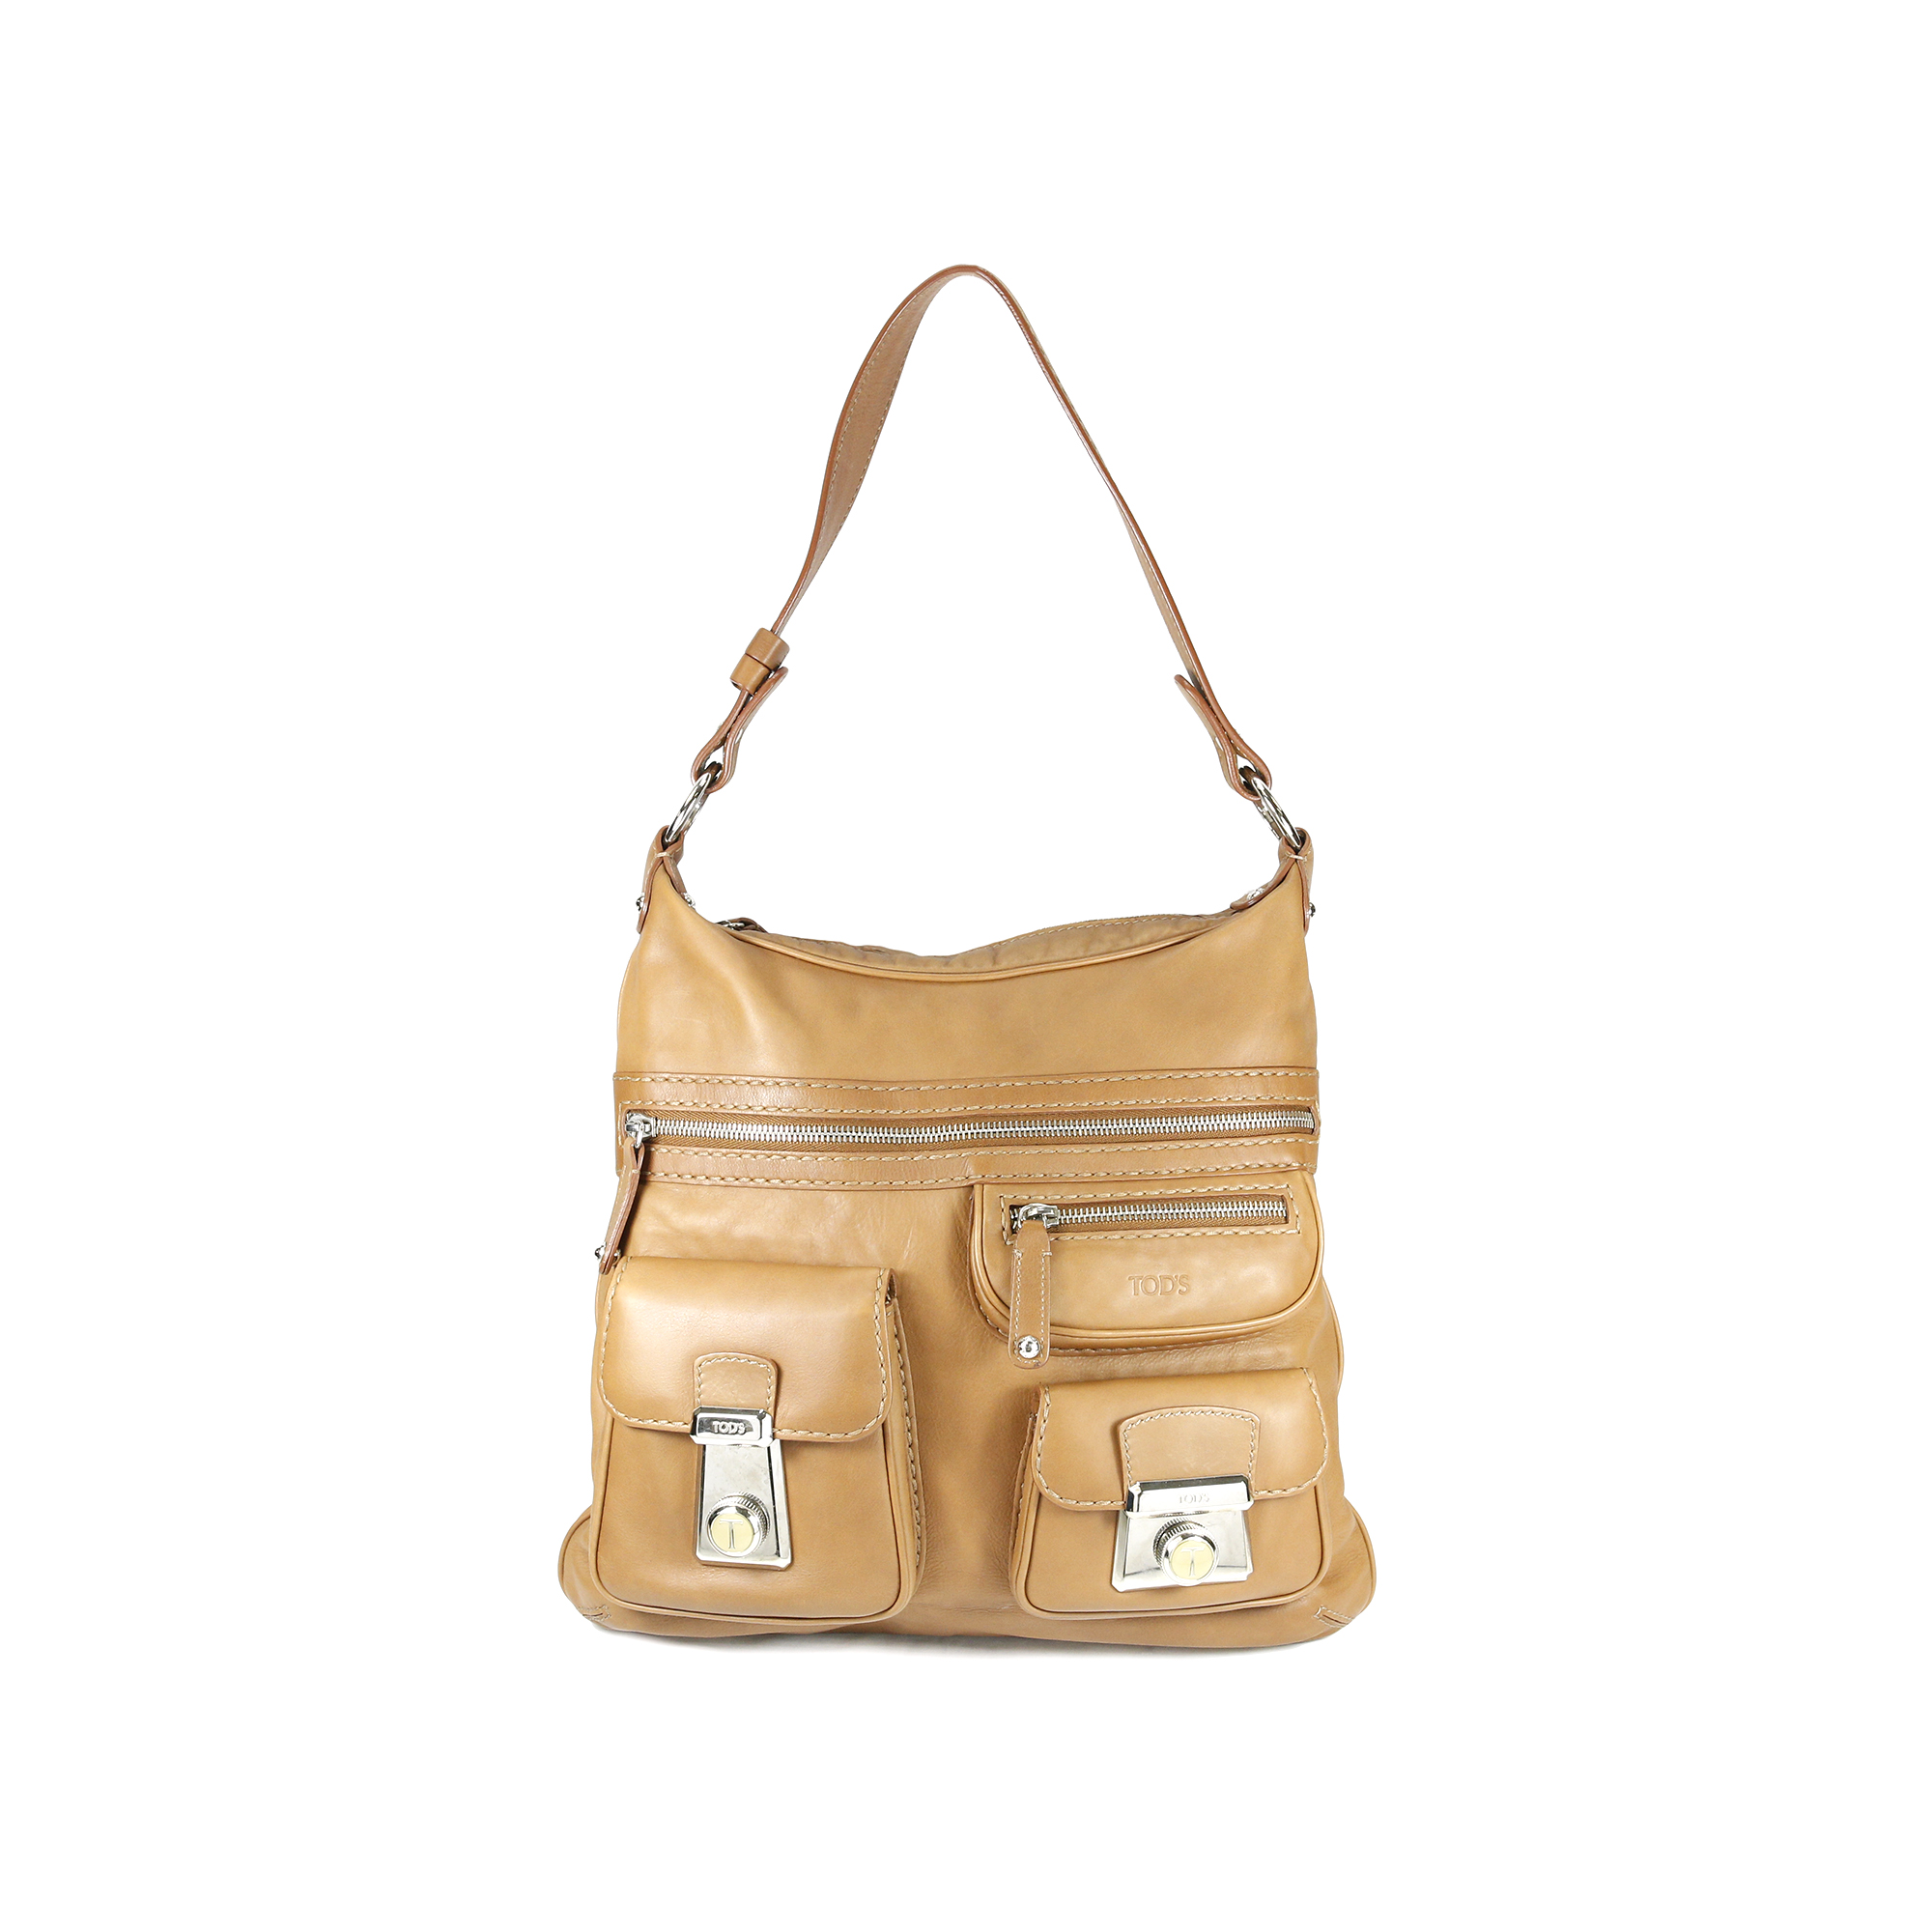 39a3ba3a60 Authentic Second Hand Tod's Tracolla Media Bag (PSS-004-00036) - THE FIFTH  COLLECTION